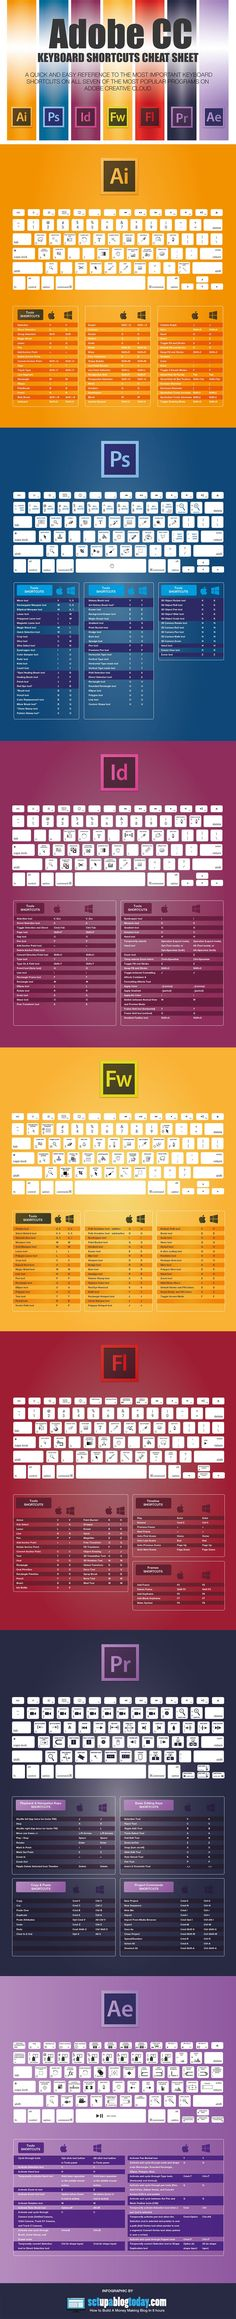 adobe-creative-cloud-keyboard-shortcuts-cheat-sheet-2015